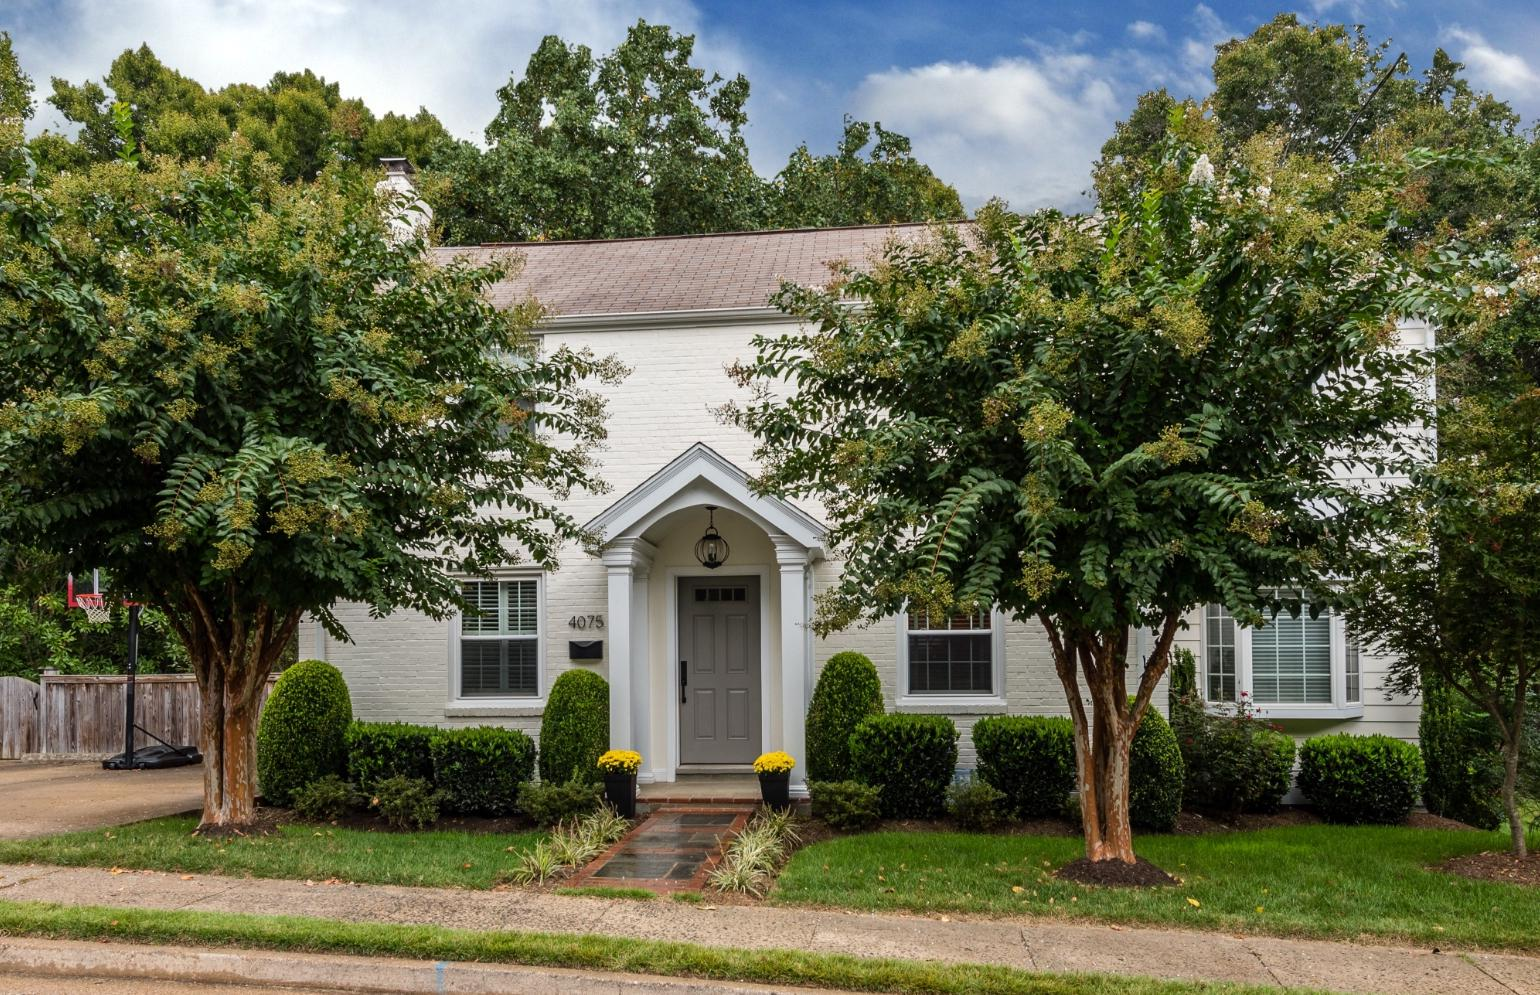 Single Family Home for Sale at 4075 35th St N 4075 35th St N Arlington, Virginia 22207 United States